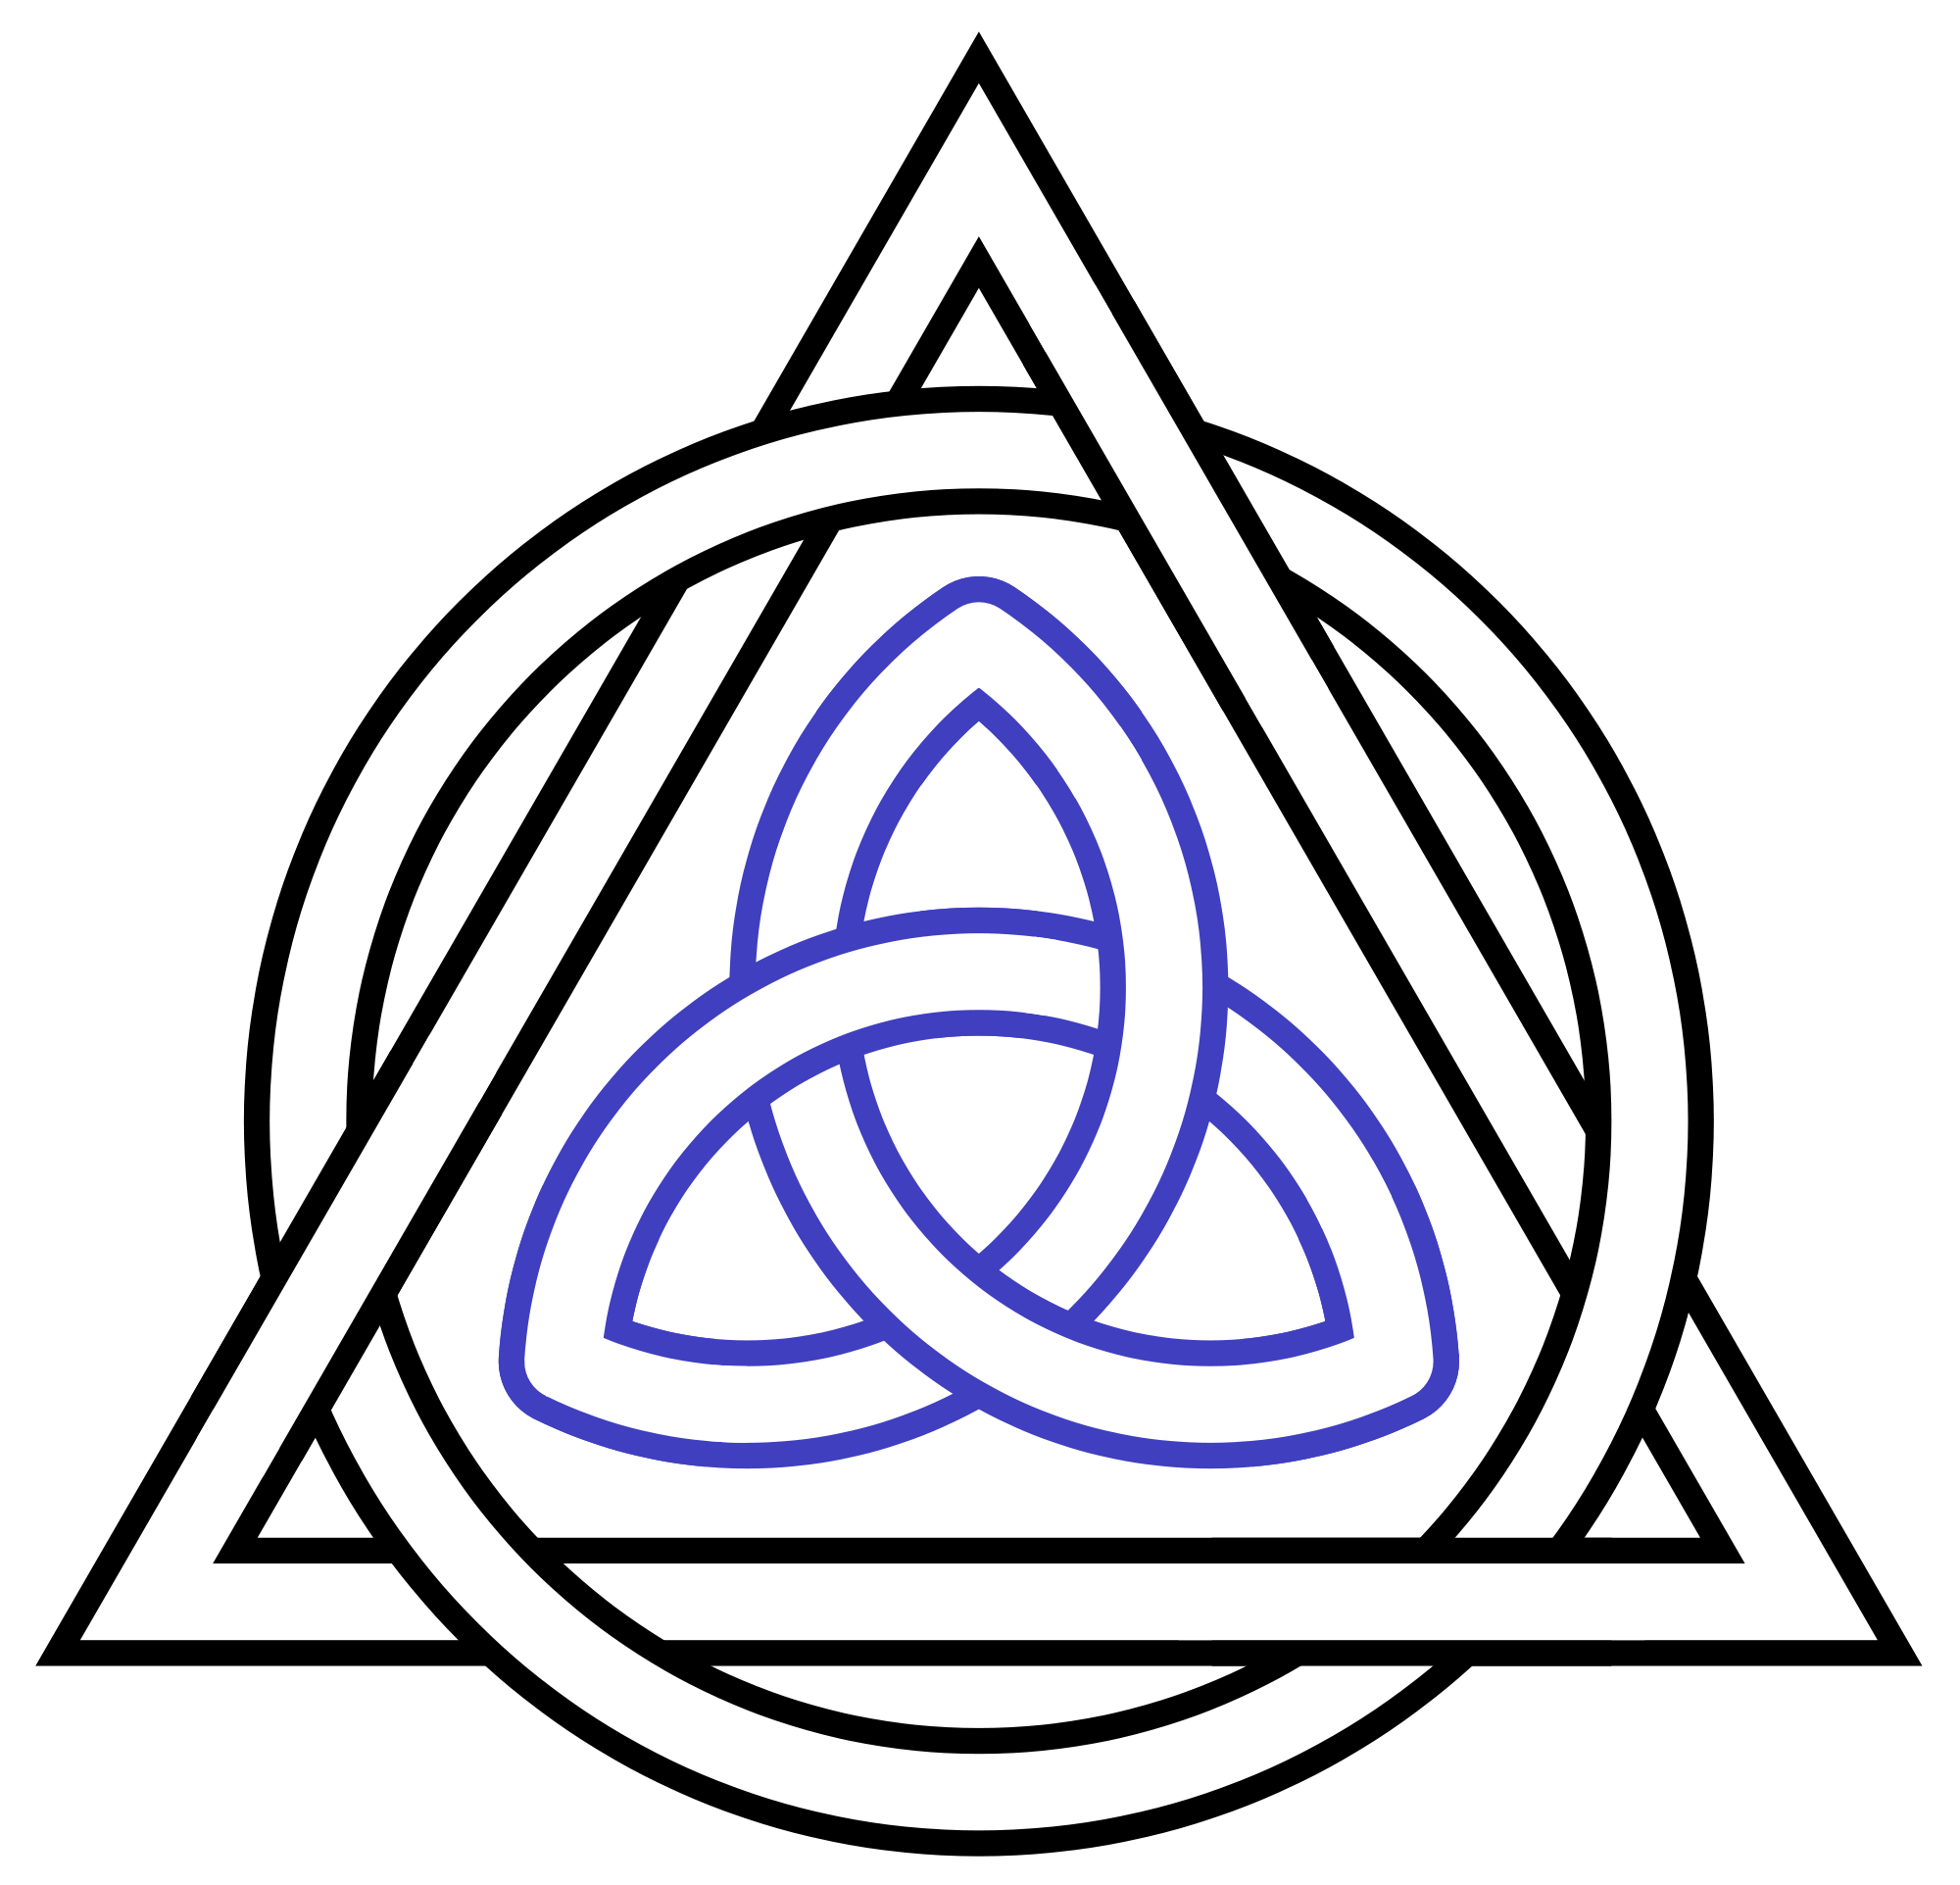 Interlaced png meaning. Px triquetra triangle